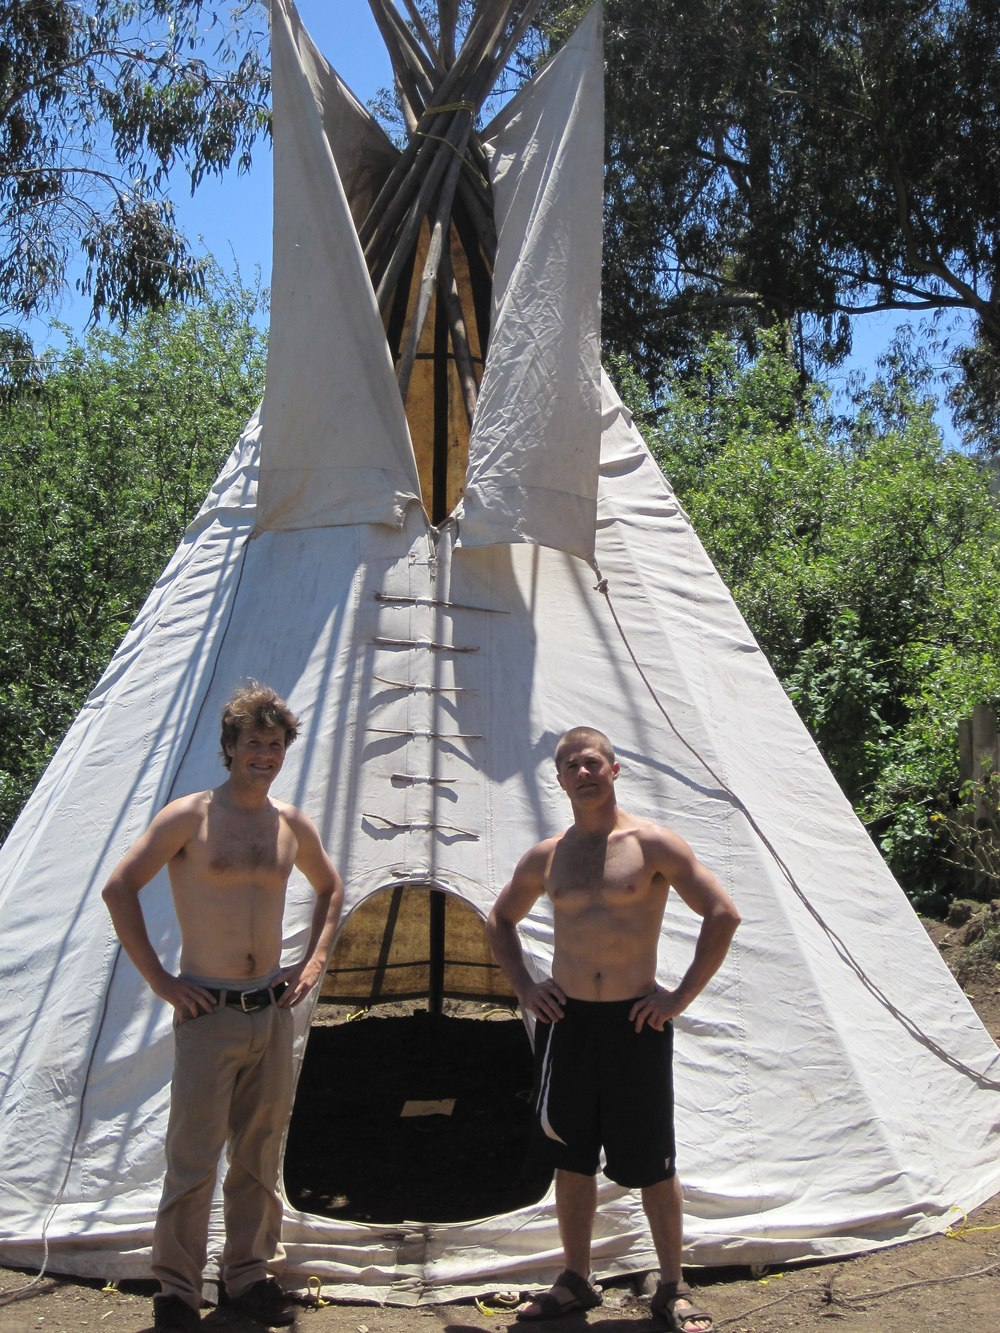 My boys and the teepee